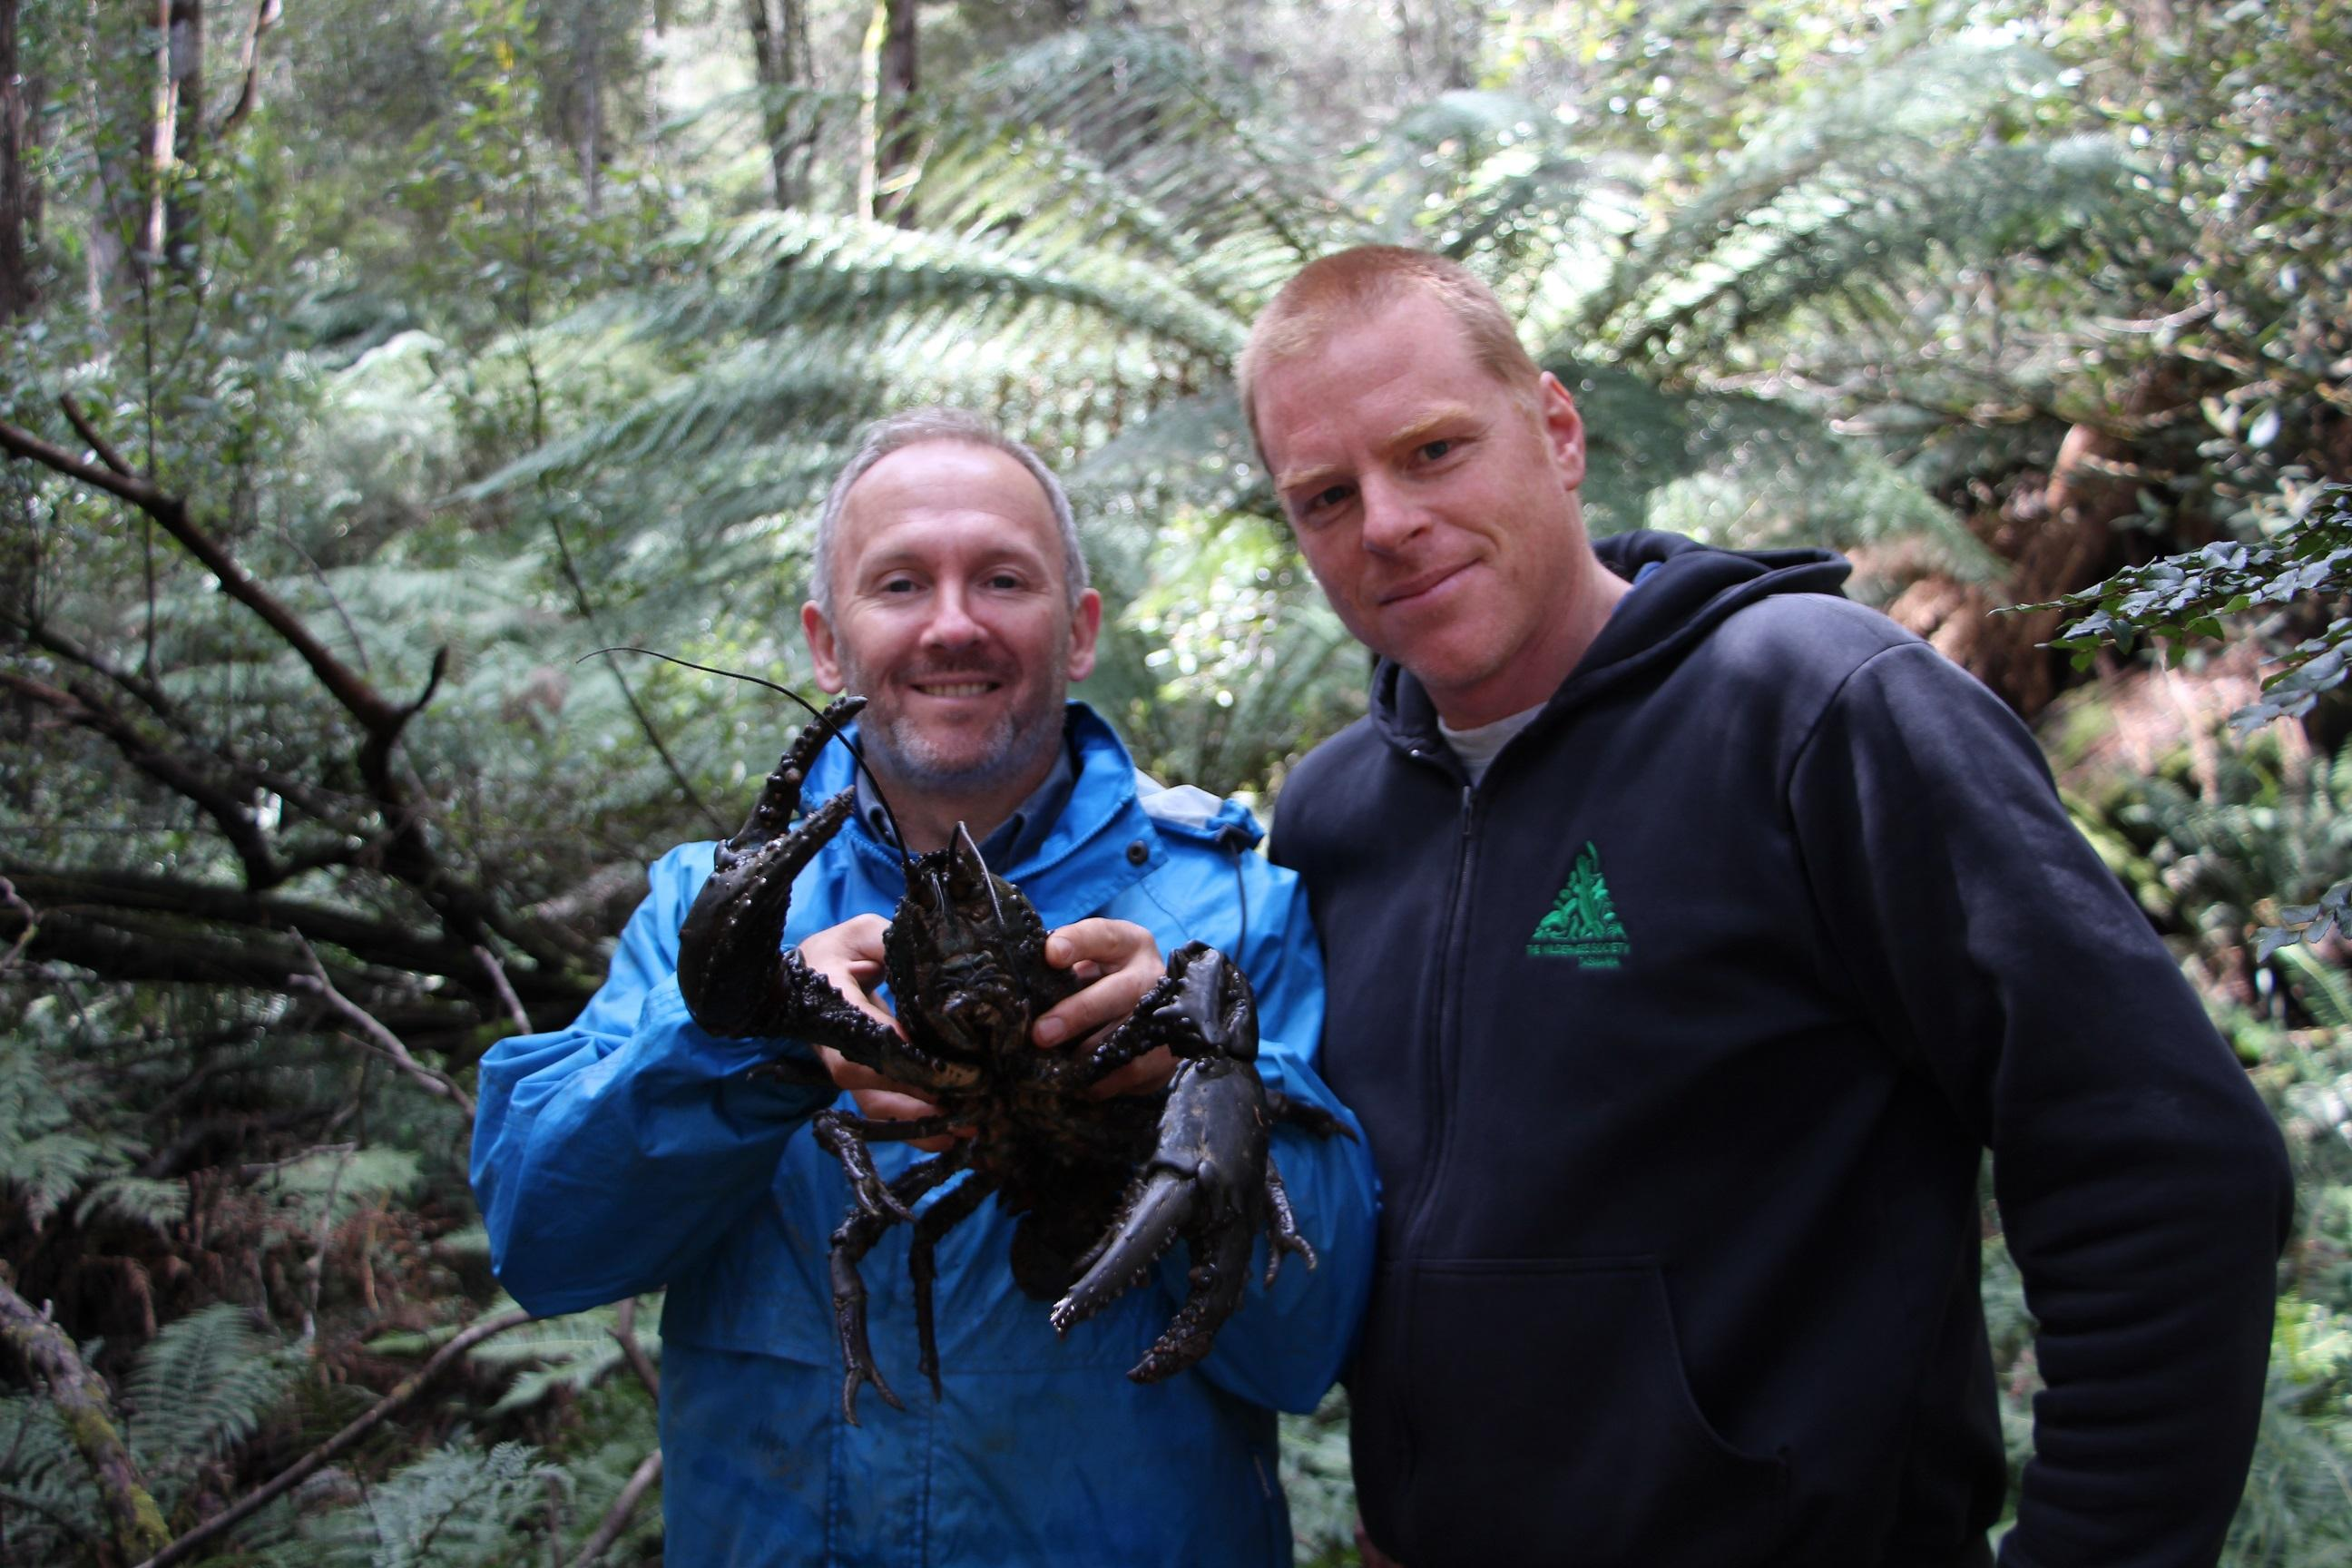 Todd Walsh, Vica Bayley and lobster